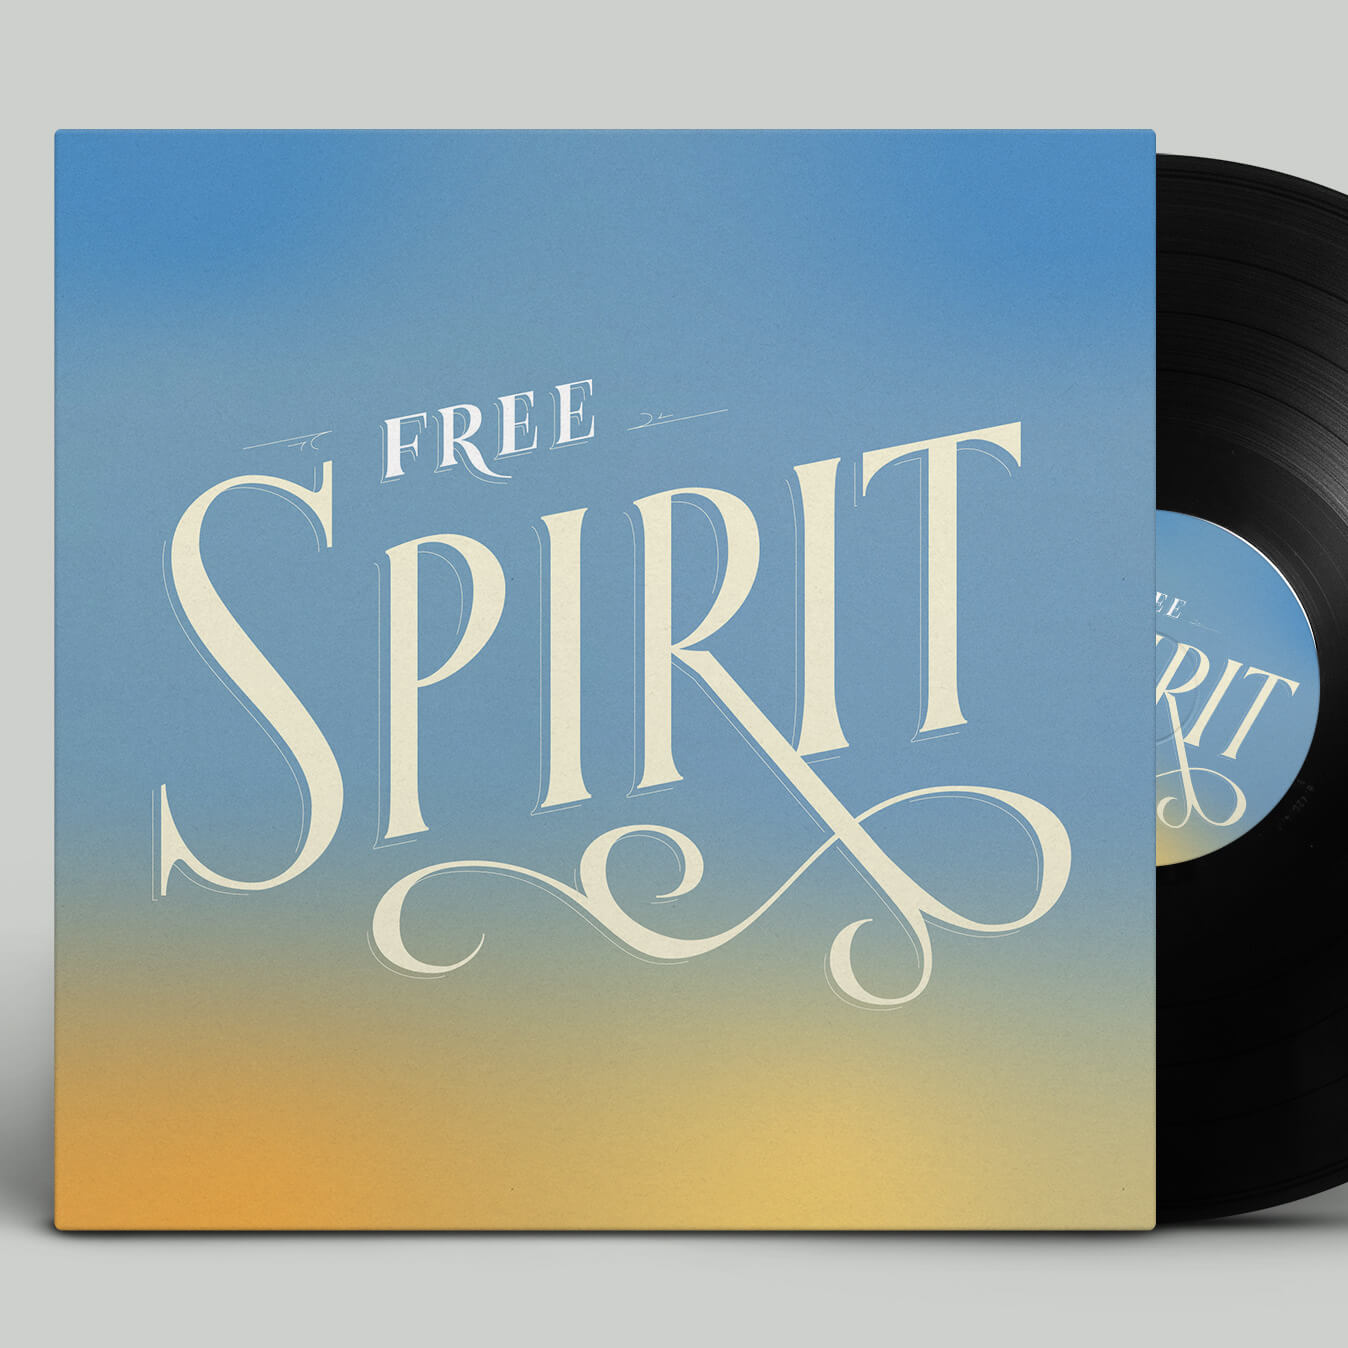 free-spirit-mockup-square-tight